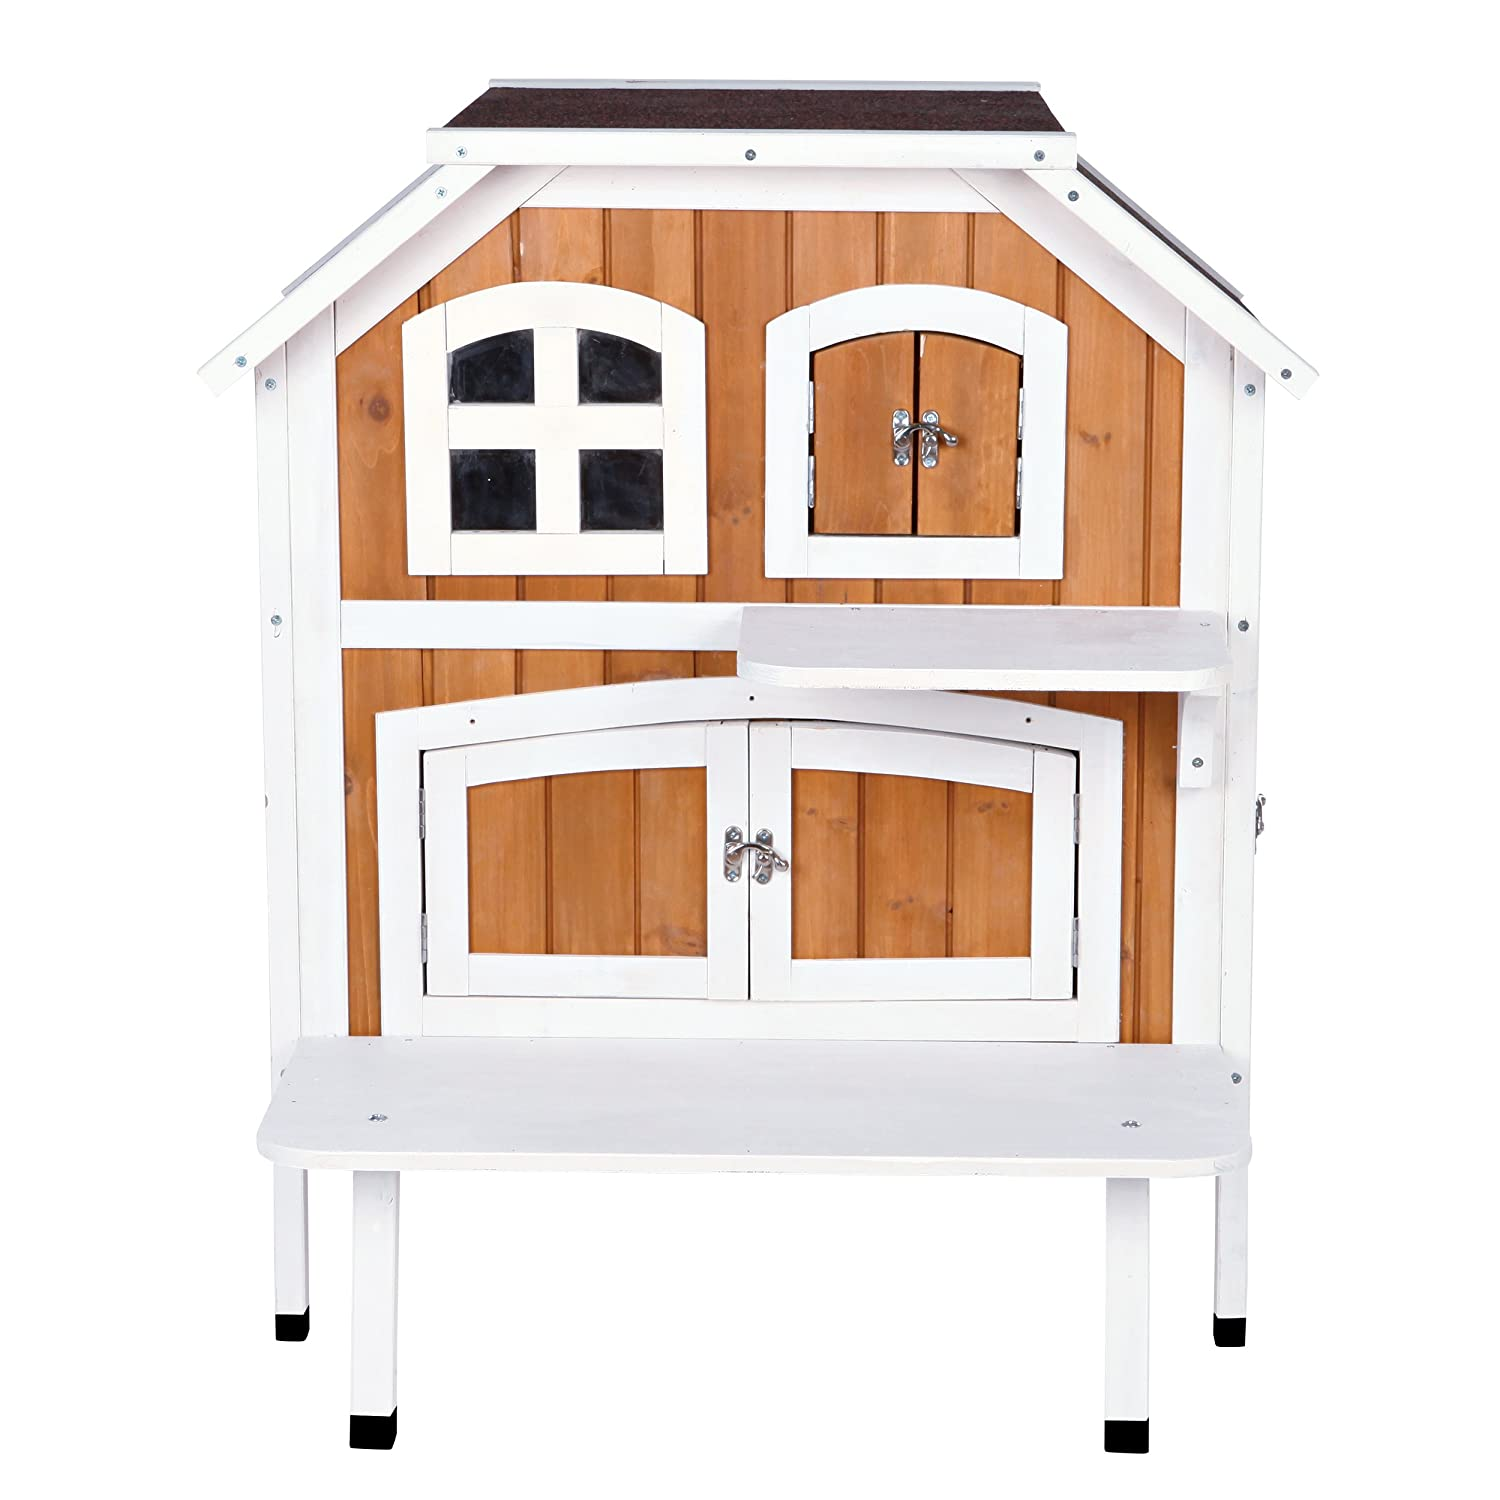 Trixie Pet Products 2-Story Cat Cottage, Brown White